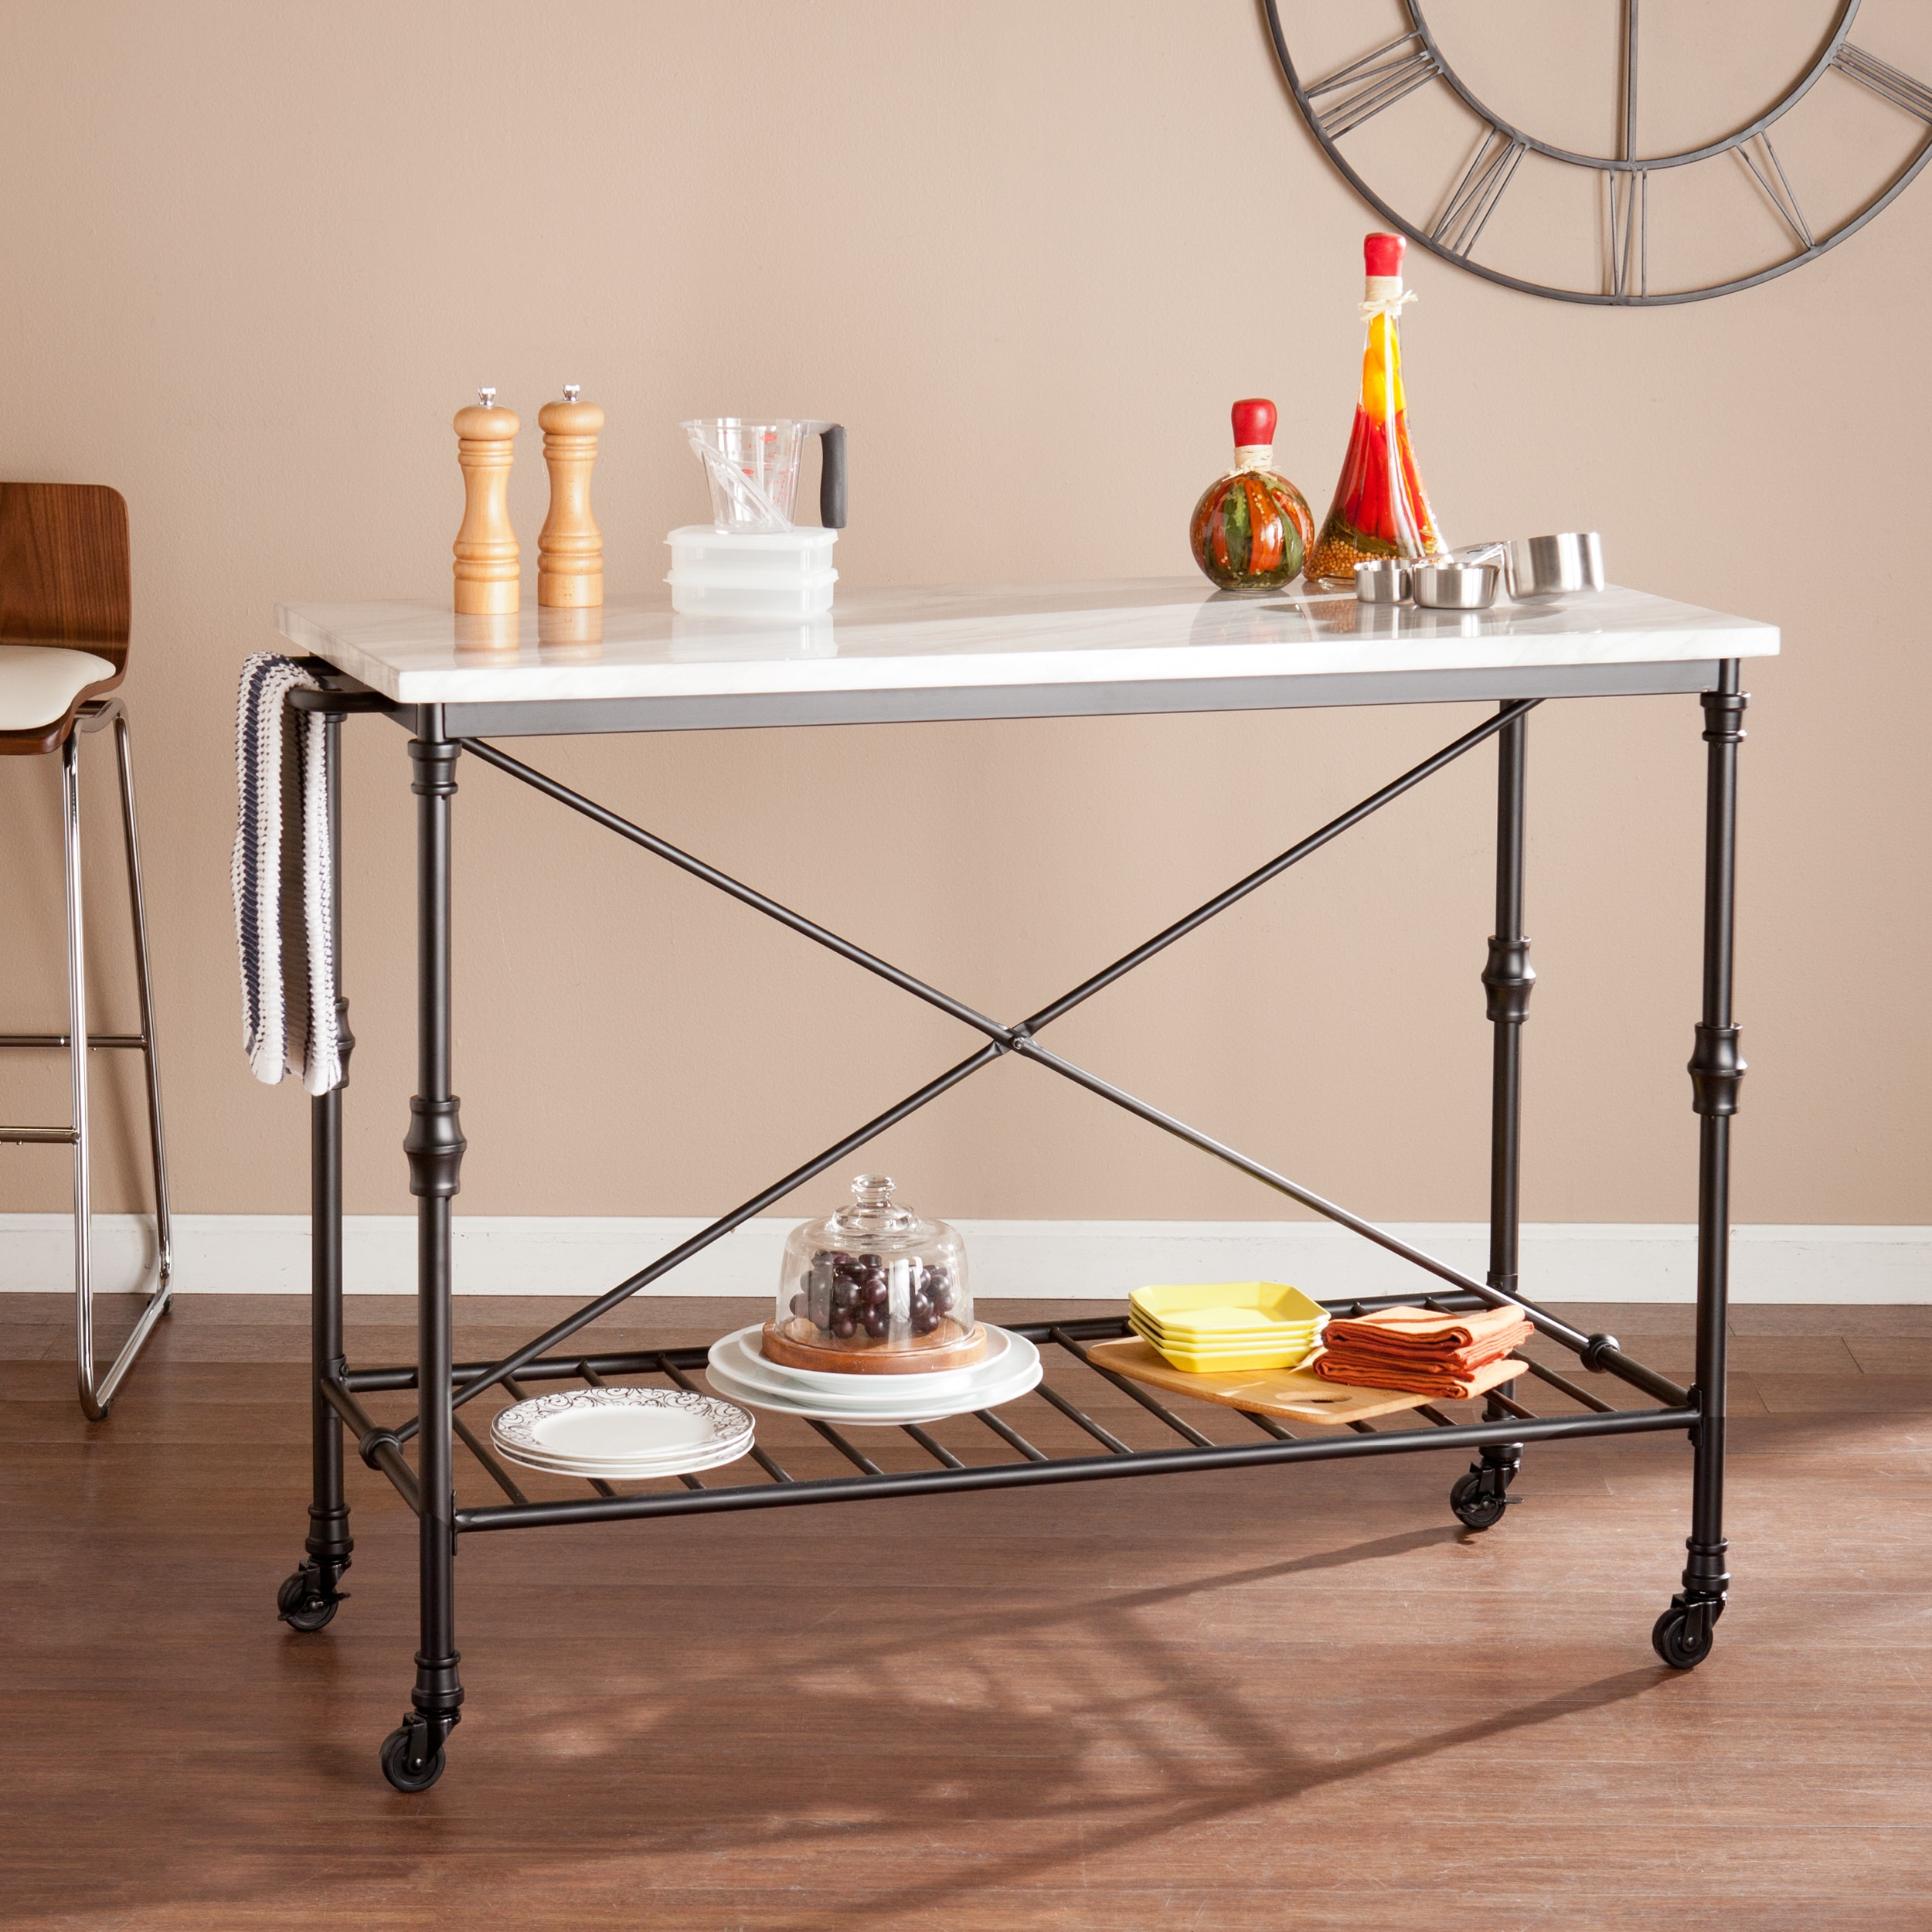 Details About Rolling Kitchen Island Cart Black Grey Faux Marble Top Handle Open Shelf Bar New